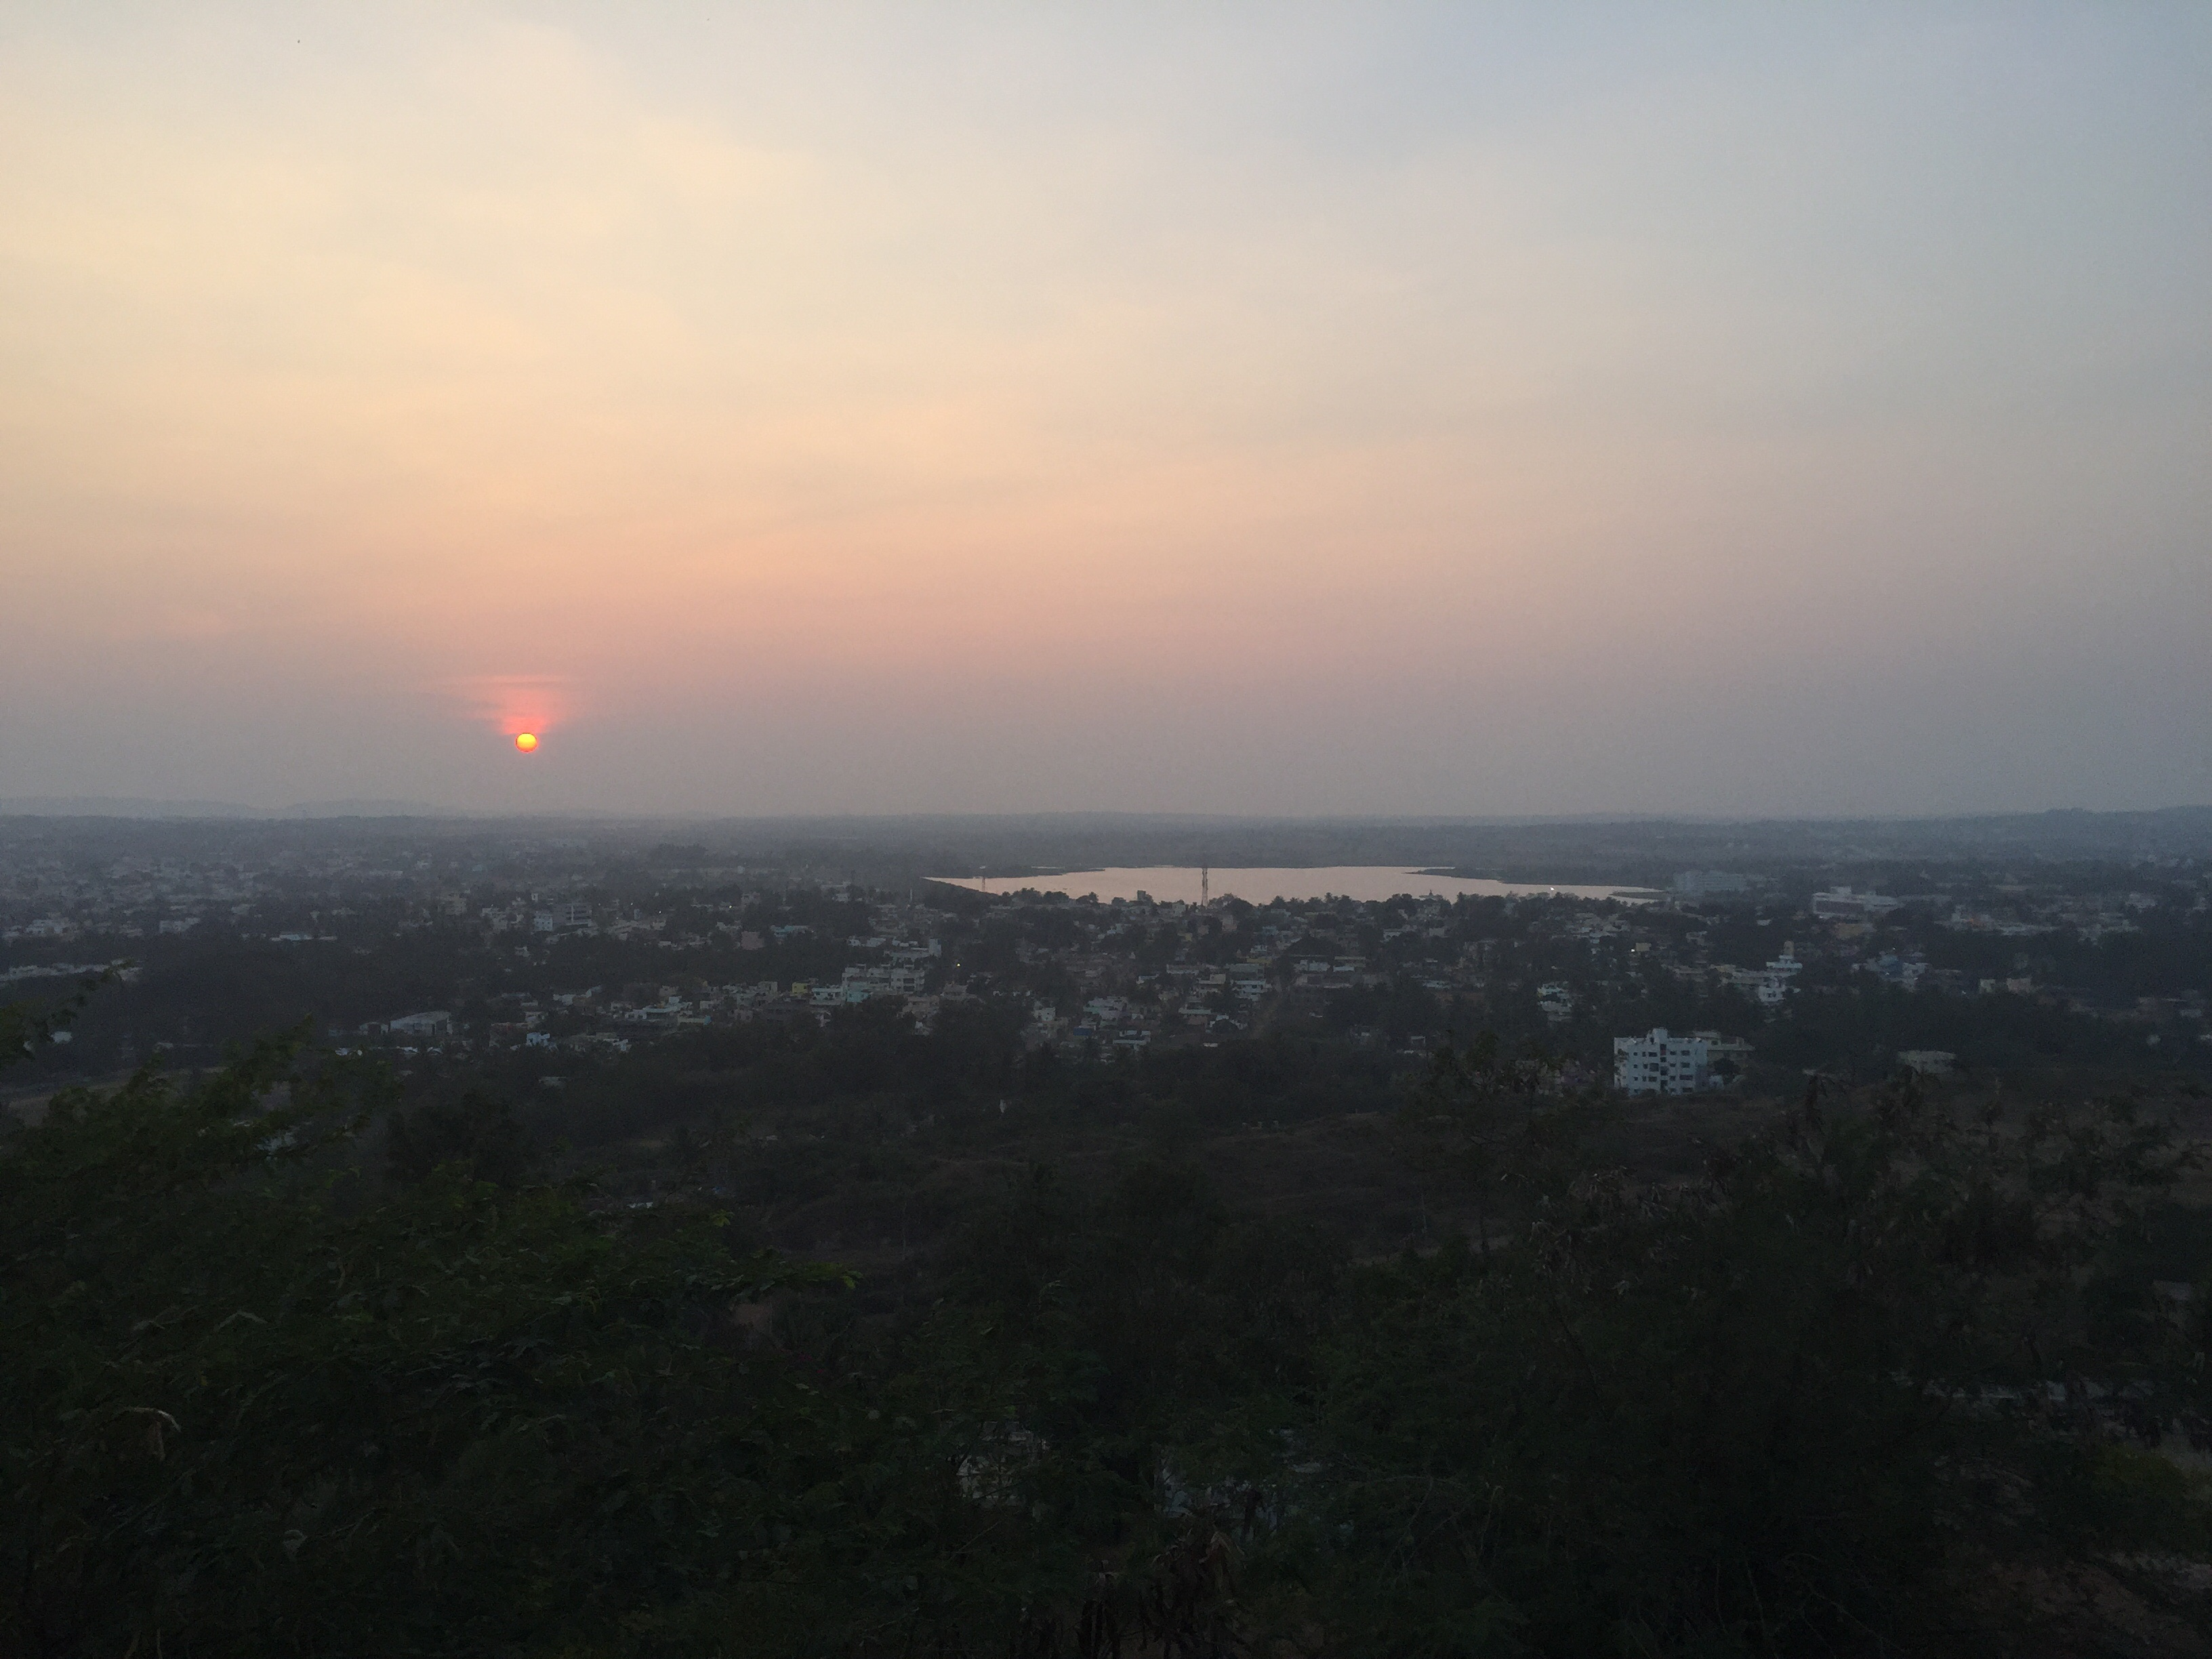 Sunset over Hubli